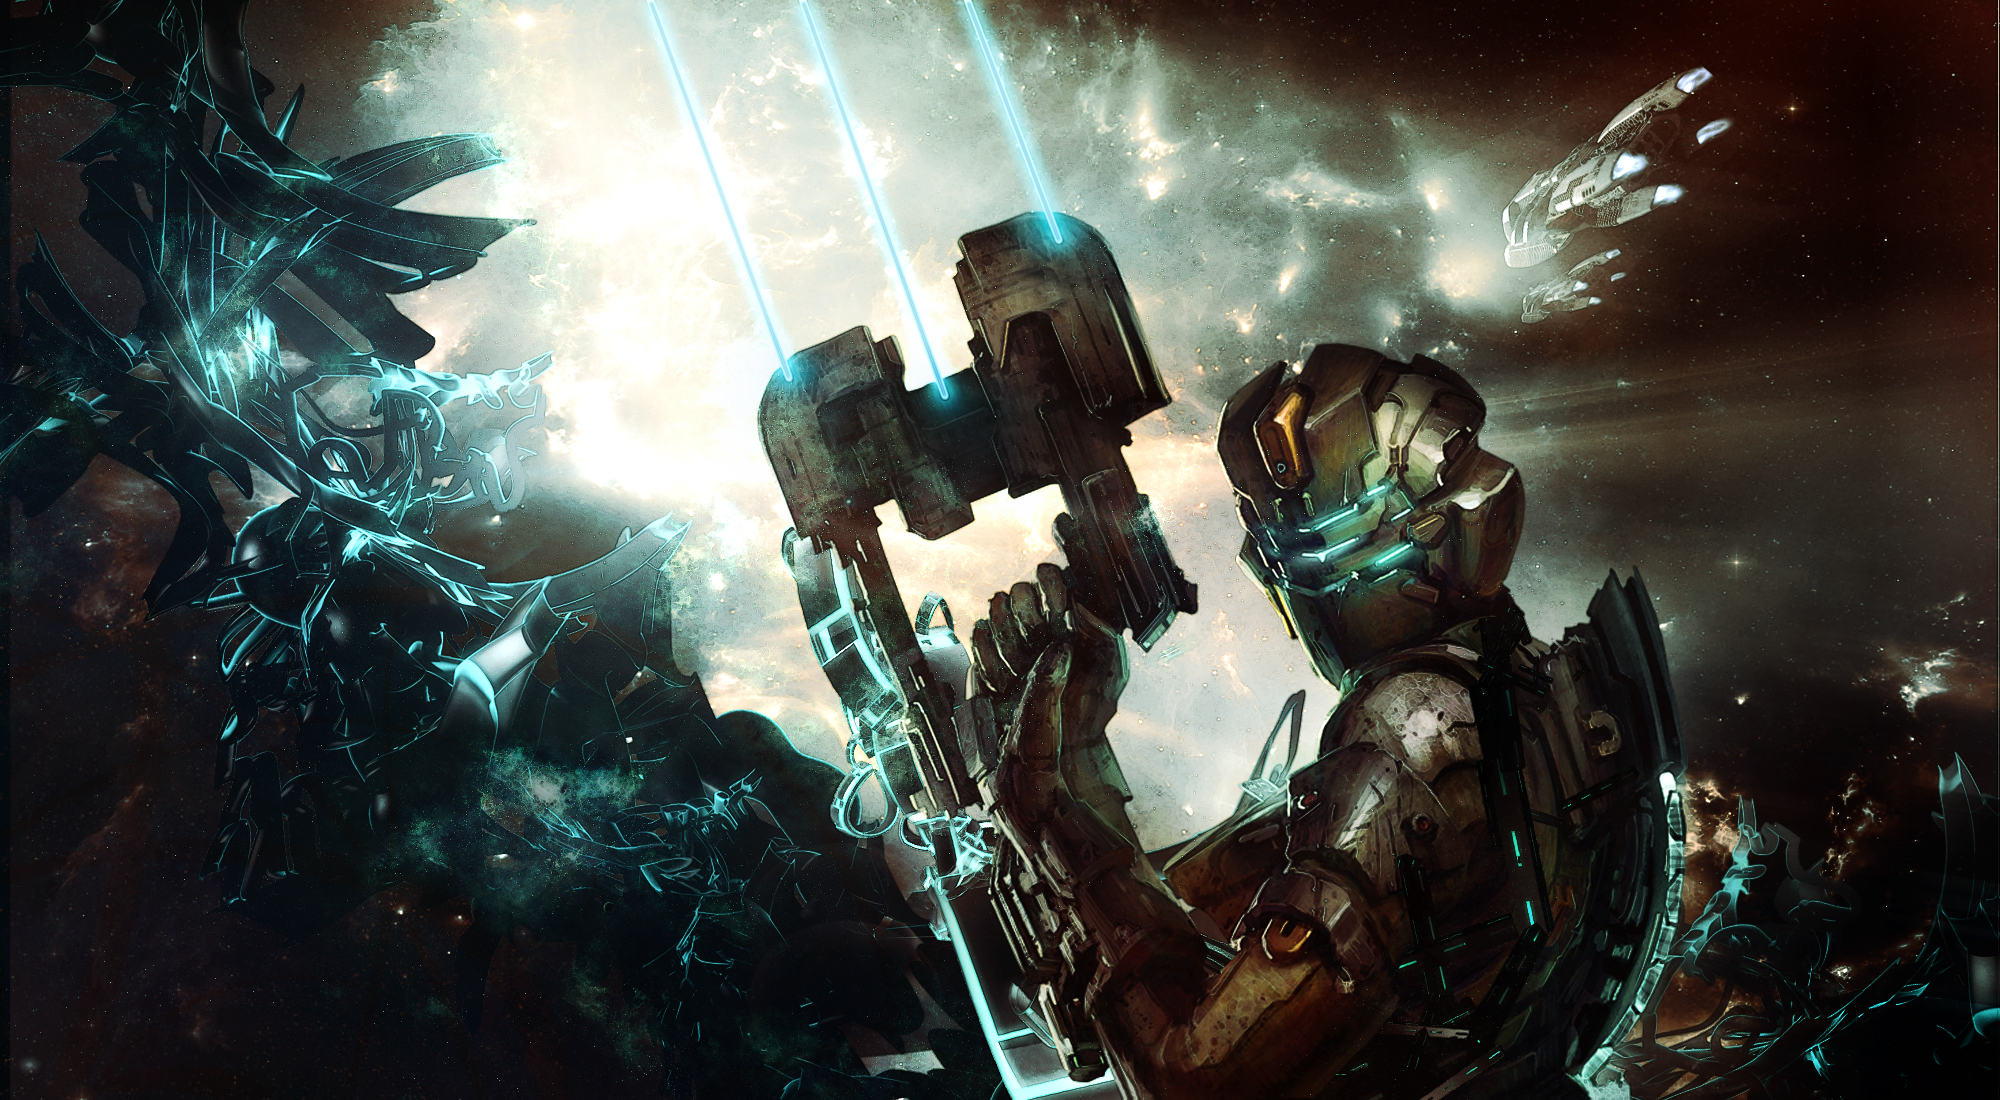 Dead space 2 hd wallpaper background image 2000x1100 - Dead space mobile wallpaper ...